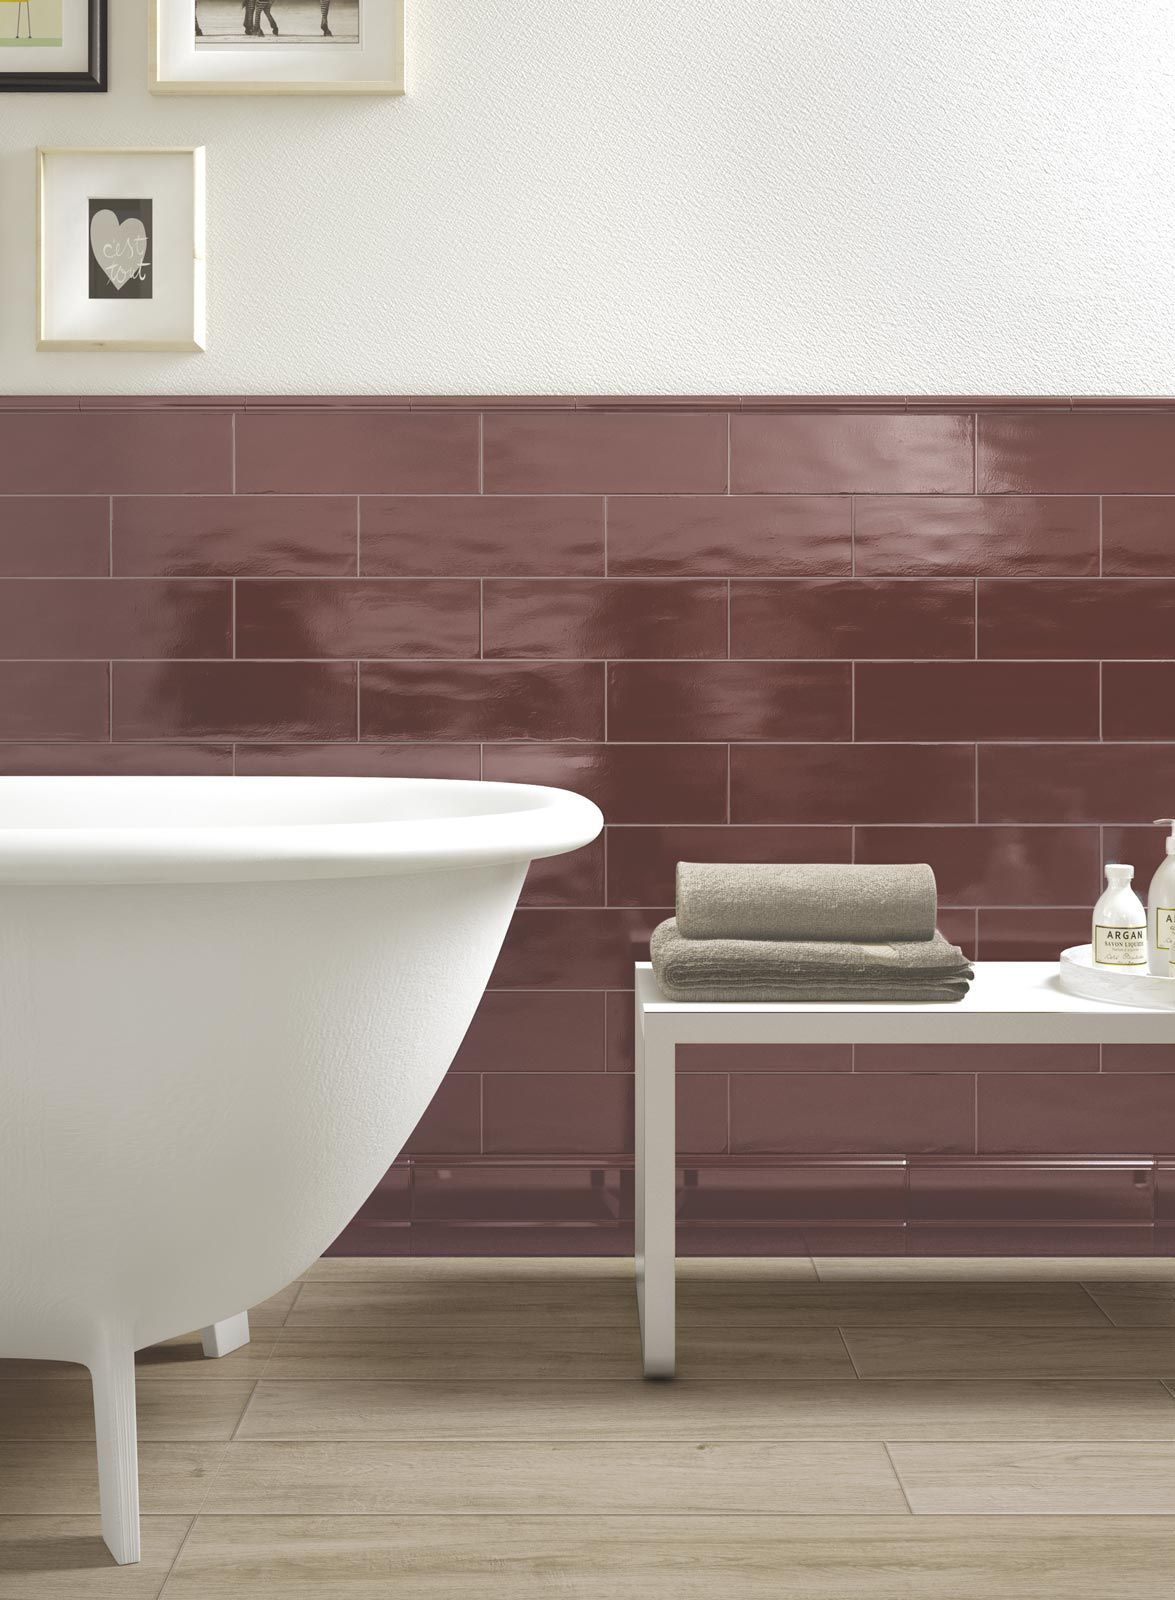 Tiling Walls in Brick Tile Pattern is Easy with the New Glossy Brick by Ragno - #Brick #easy #glossy #pattern #Ragno #Tile #Tiling #walls